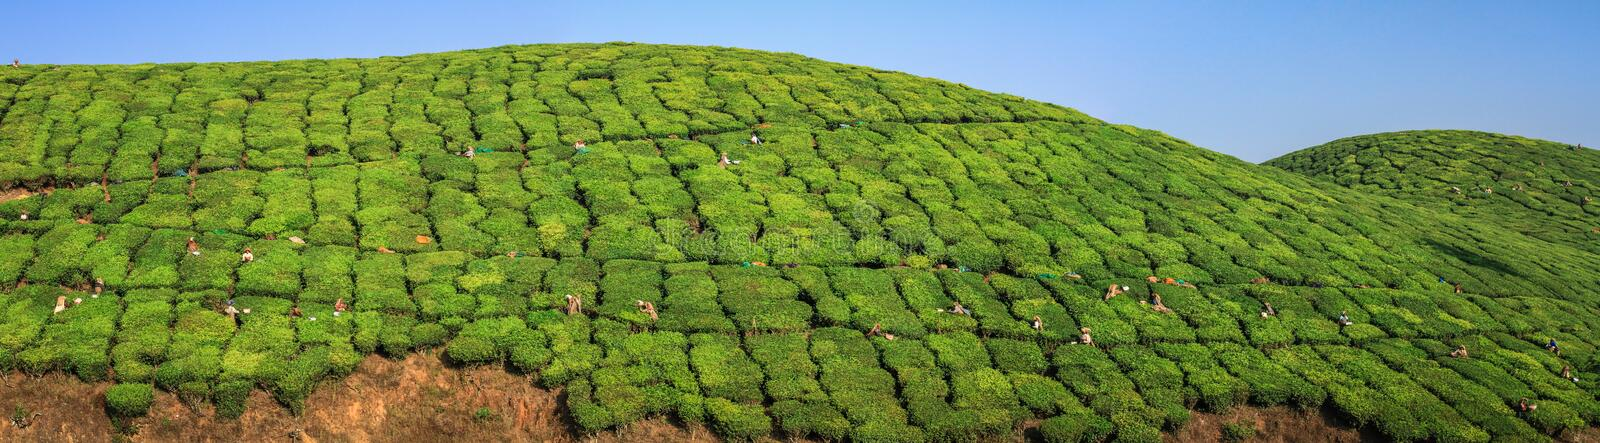 Panoramic view on tea workers harvesting tea in the green lush tea plantation hills and mountains around Munnar, Kerala, India royalty free stock image